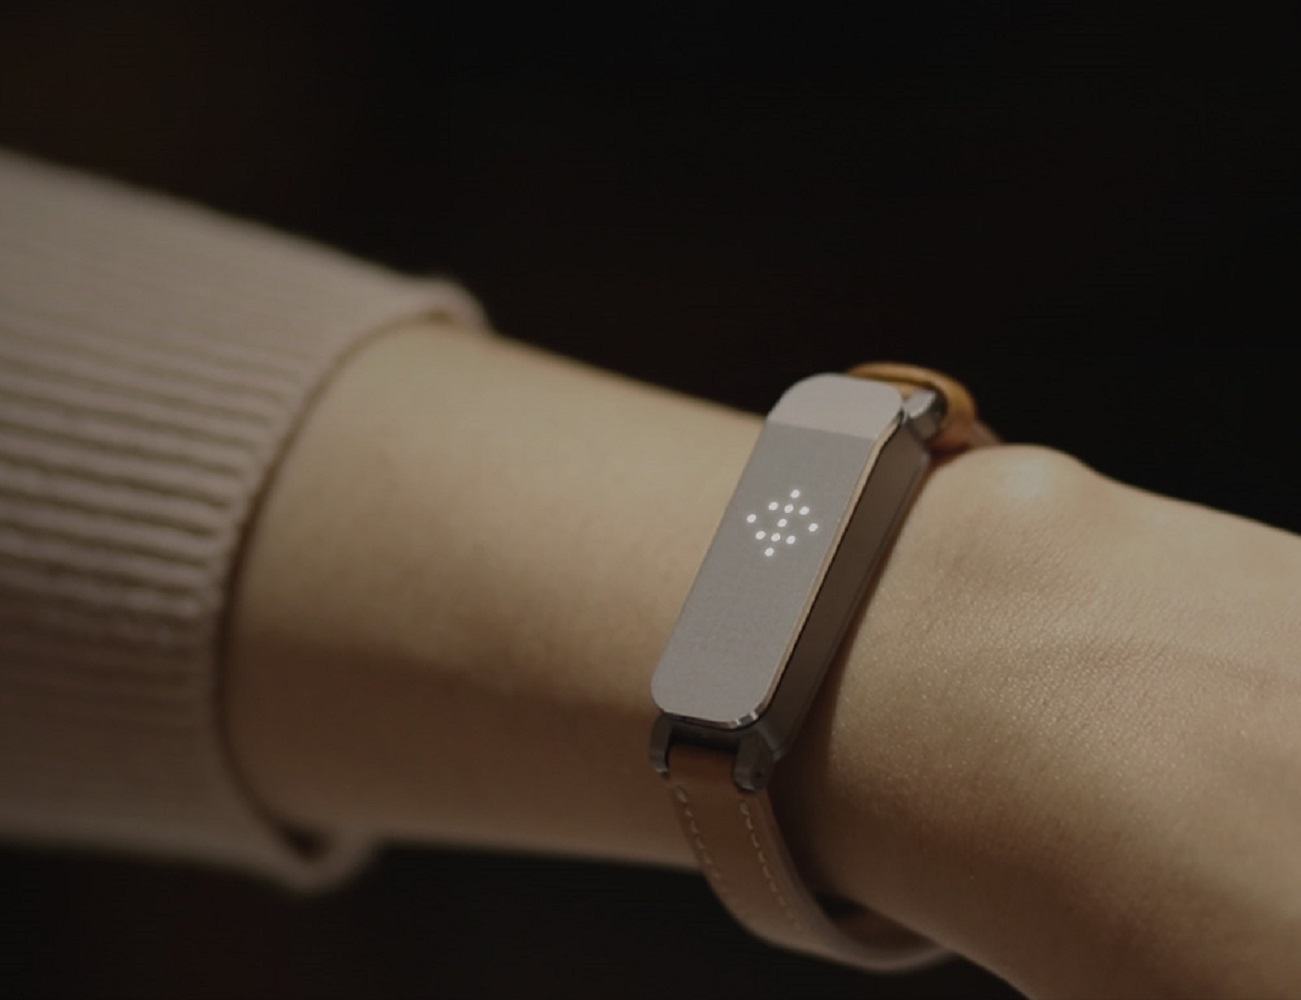 Arki%3A+Your+Walking+Coach